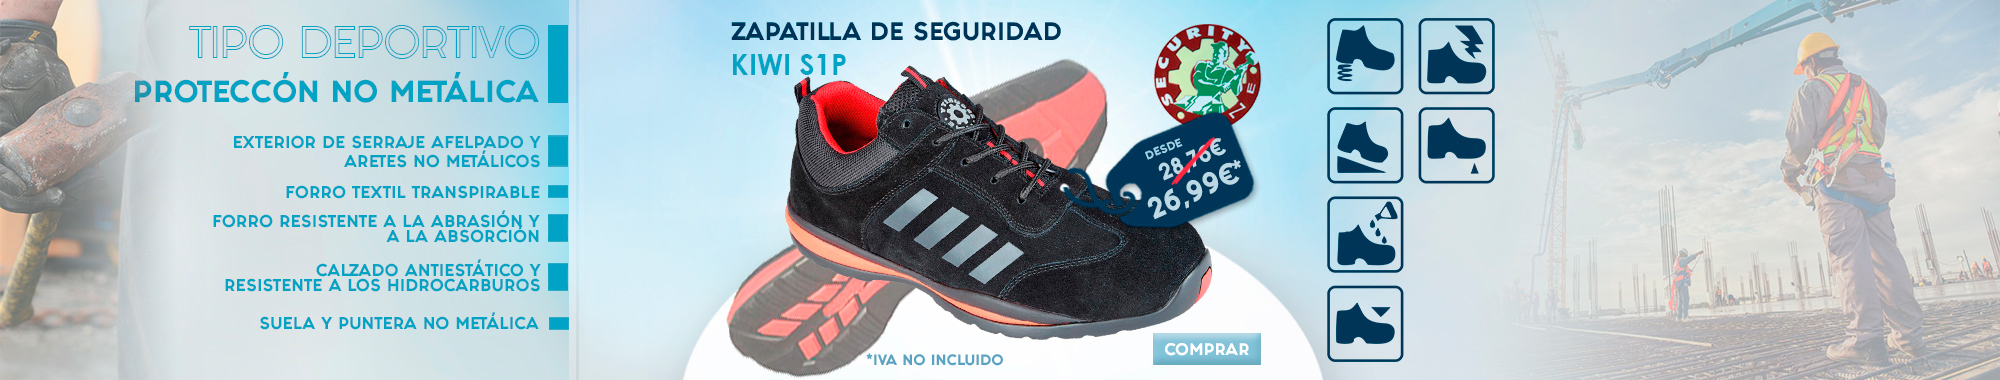 Zapatilla de seguridad Security line Kiwi